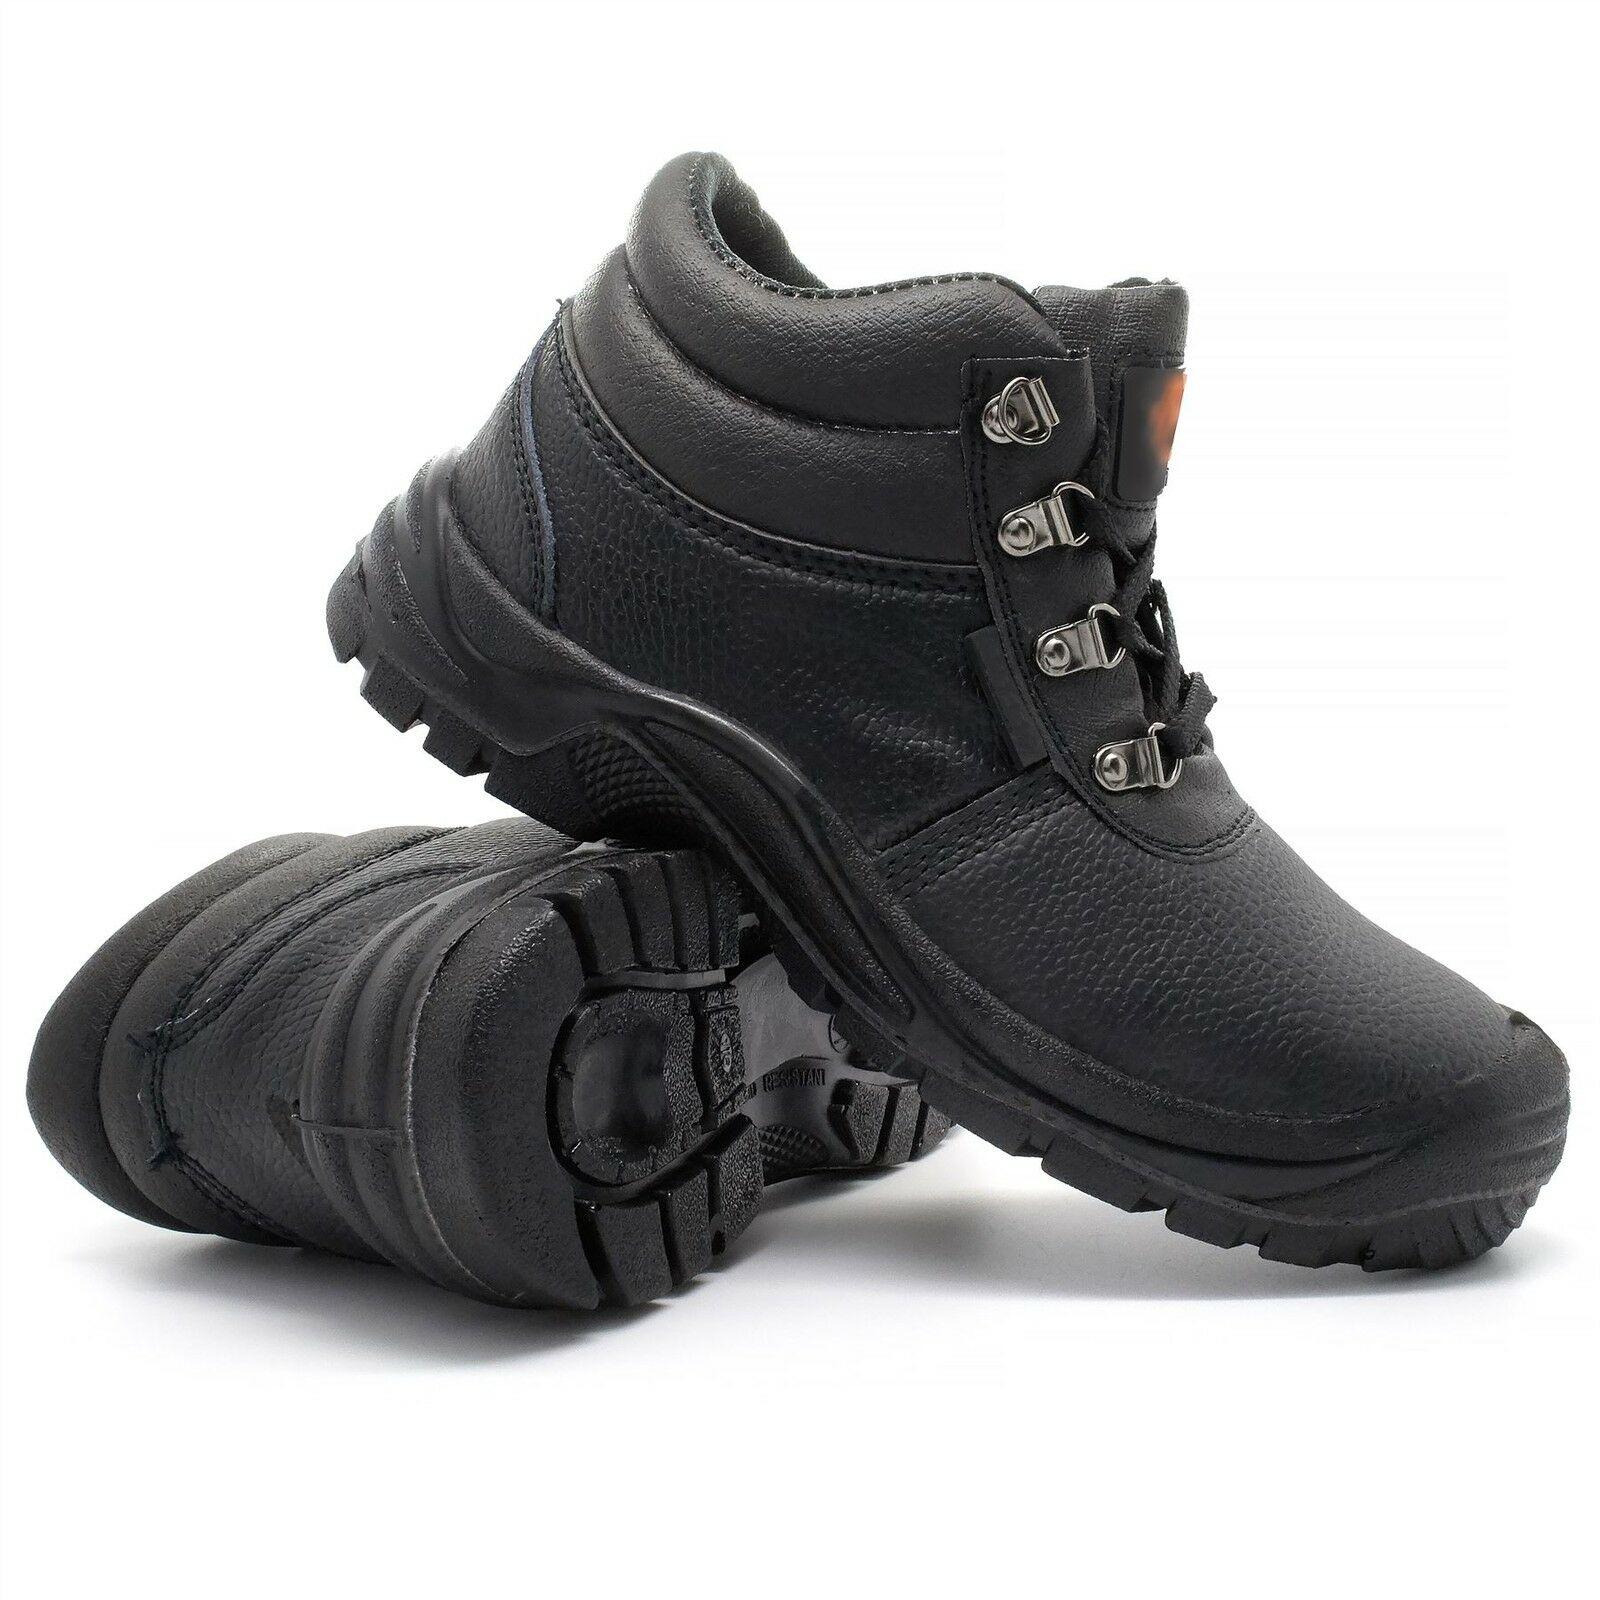 New Mens Safety Toe Work Boots Ankle Shoes Lightweight Steel Toe Safety Cap Leather 6f2eb2